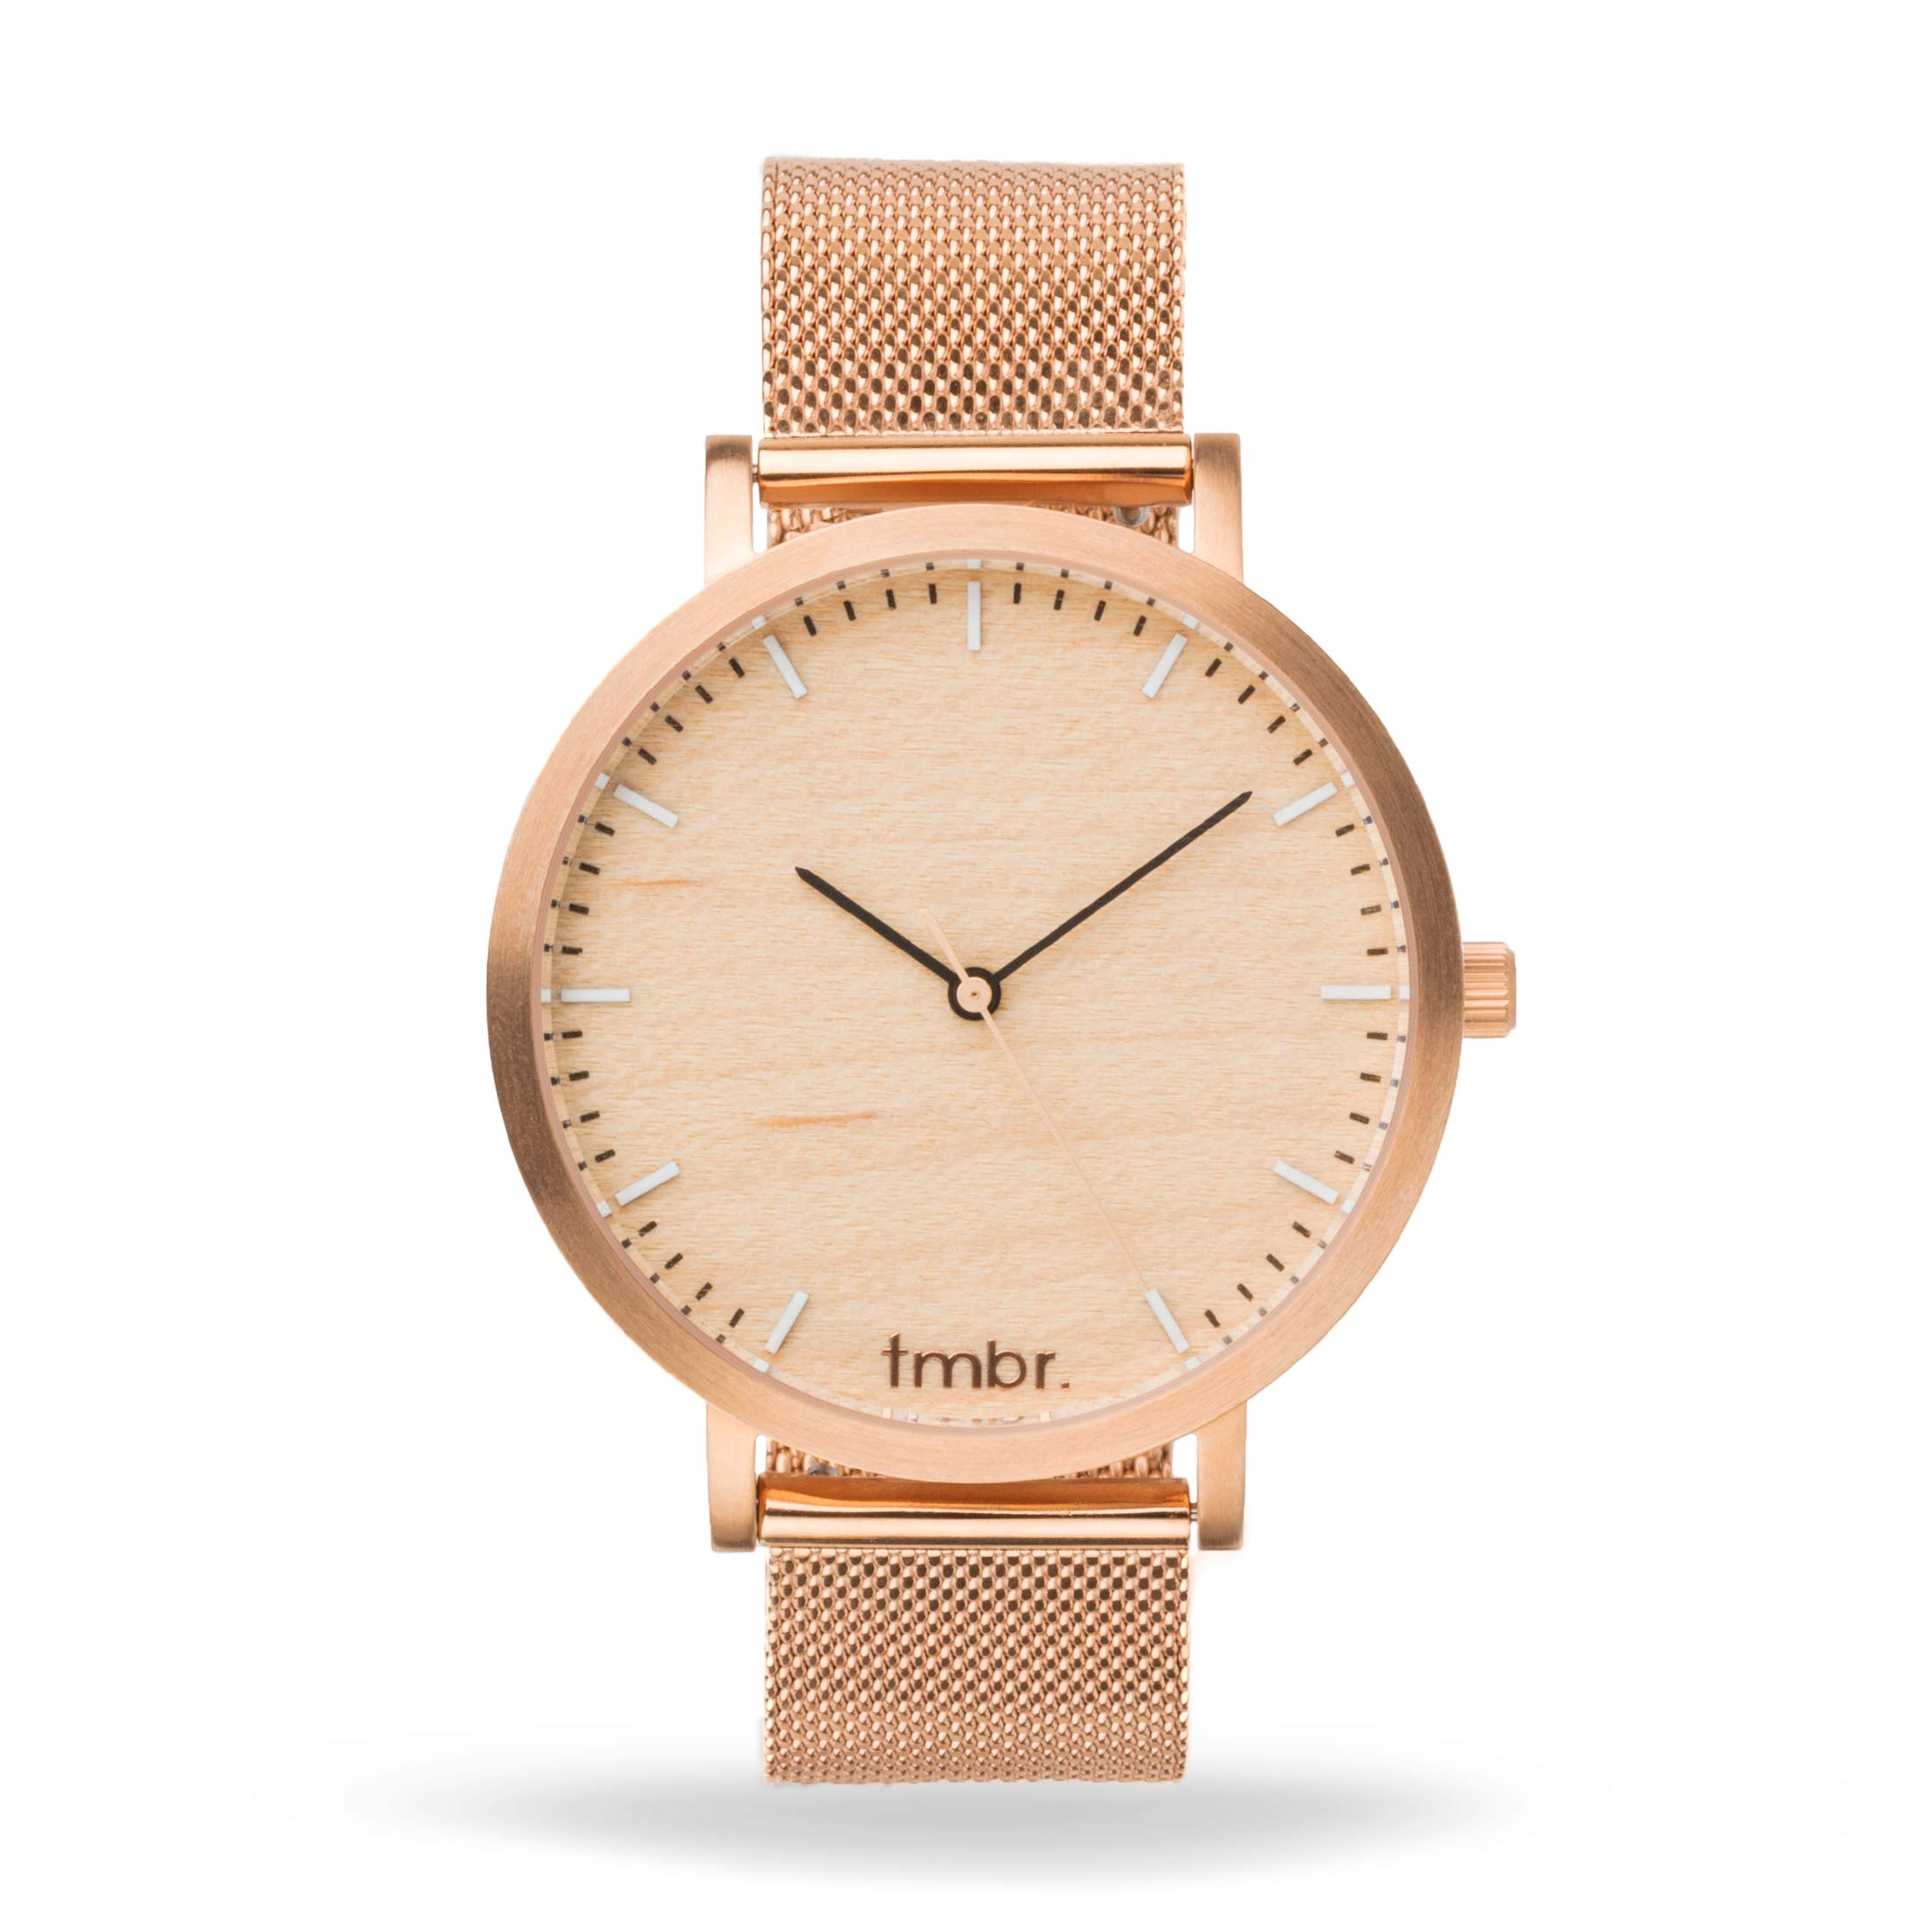 Tmbr Helm Minimalist Wooden Personalized Watch Rose Gold